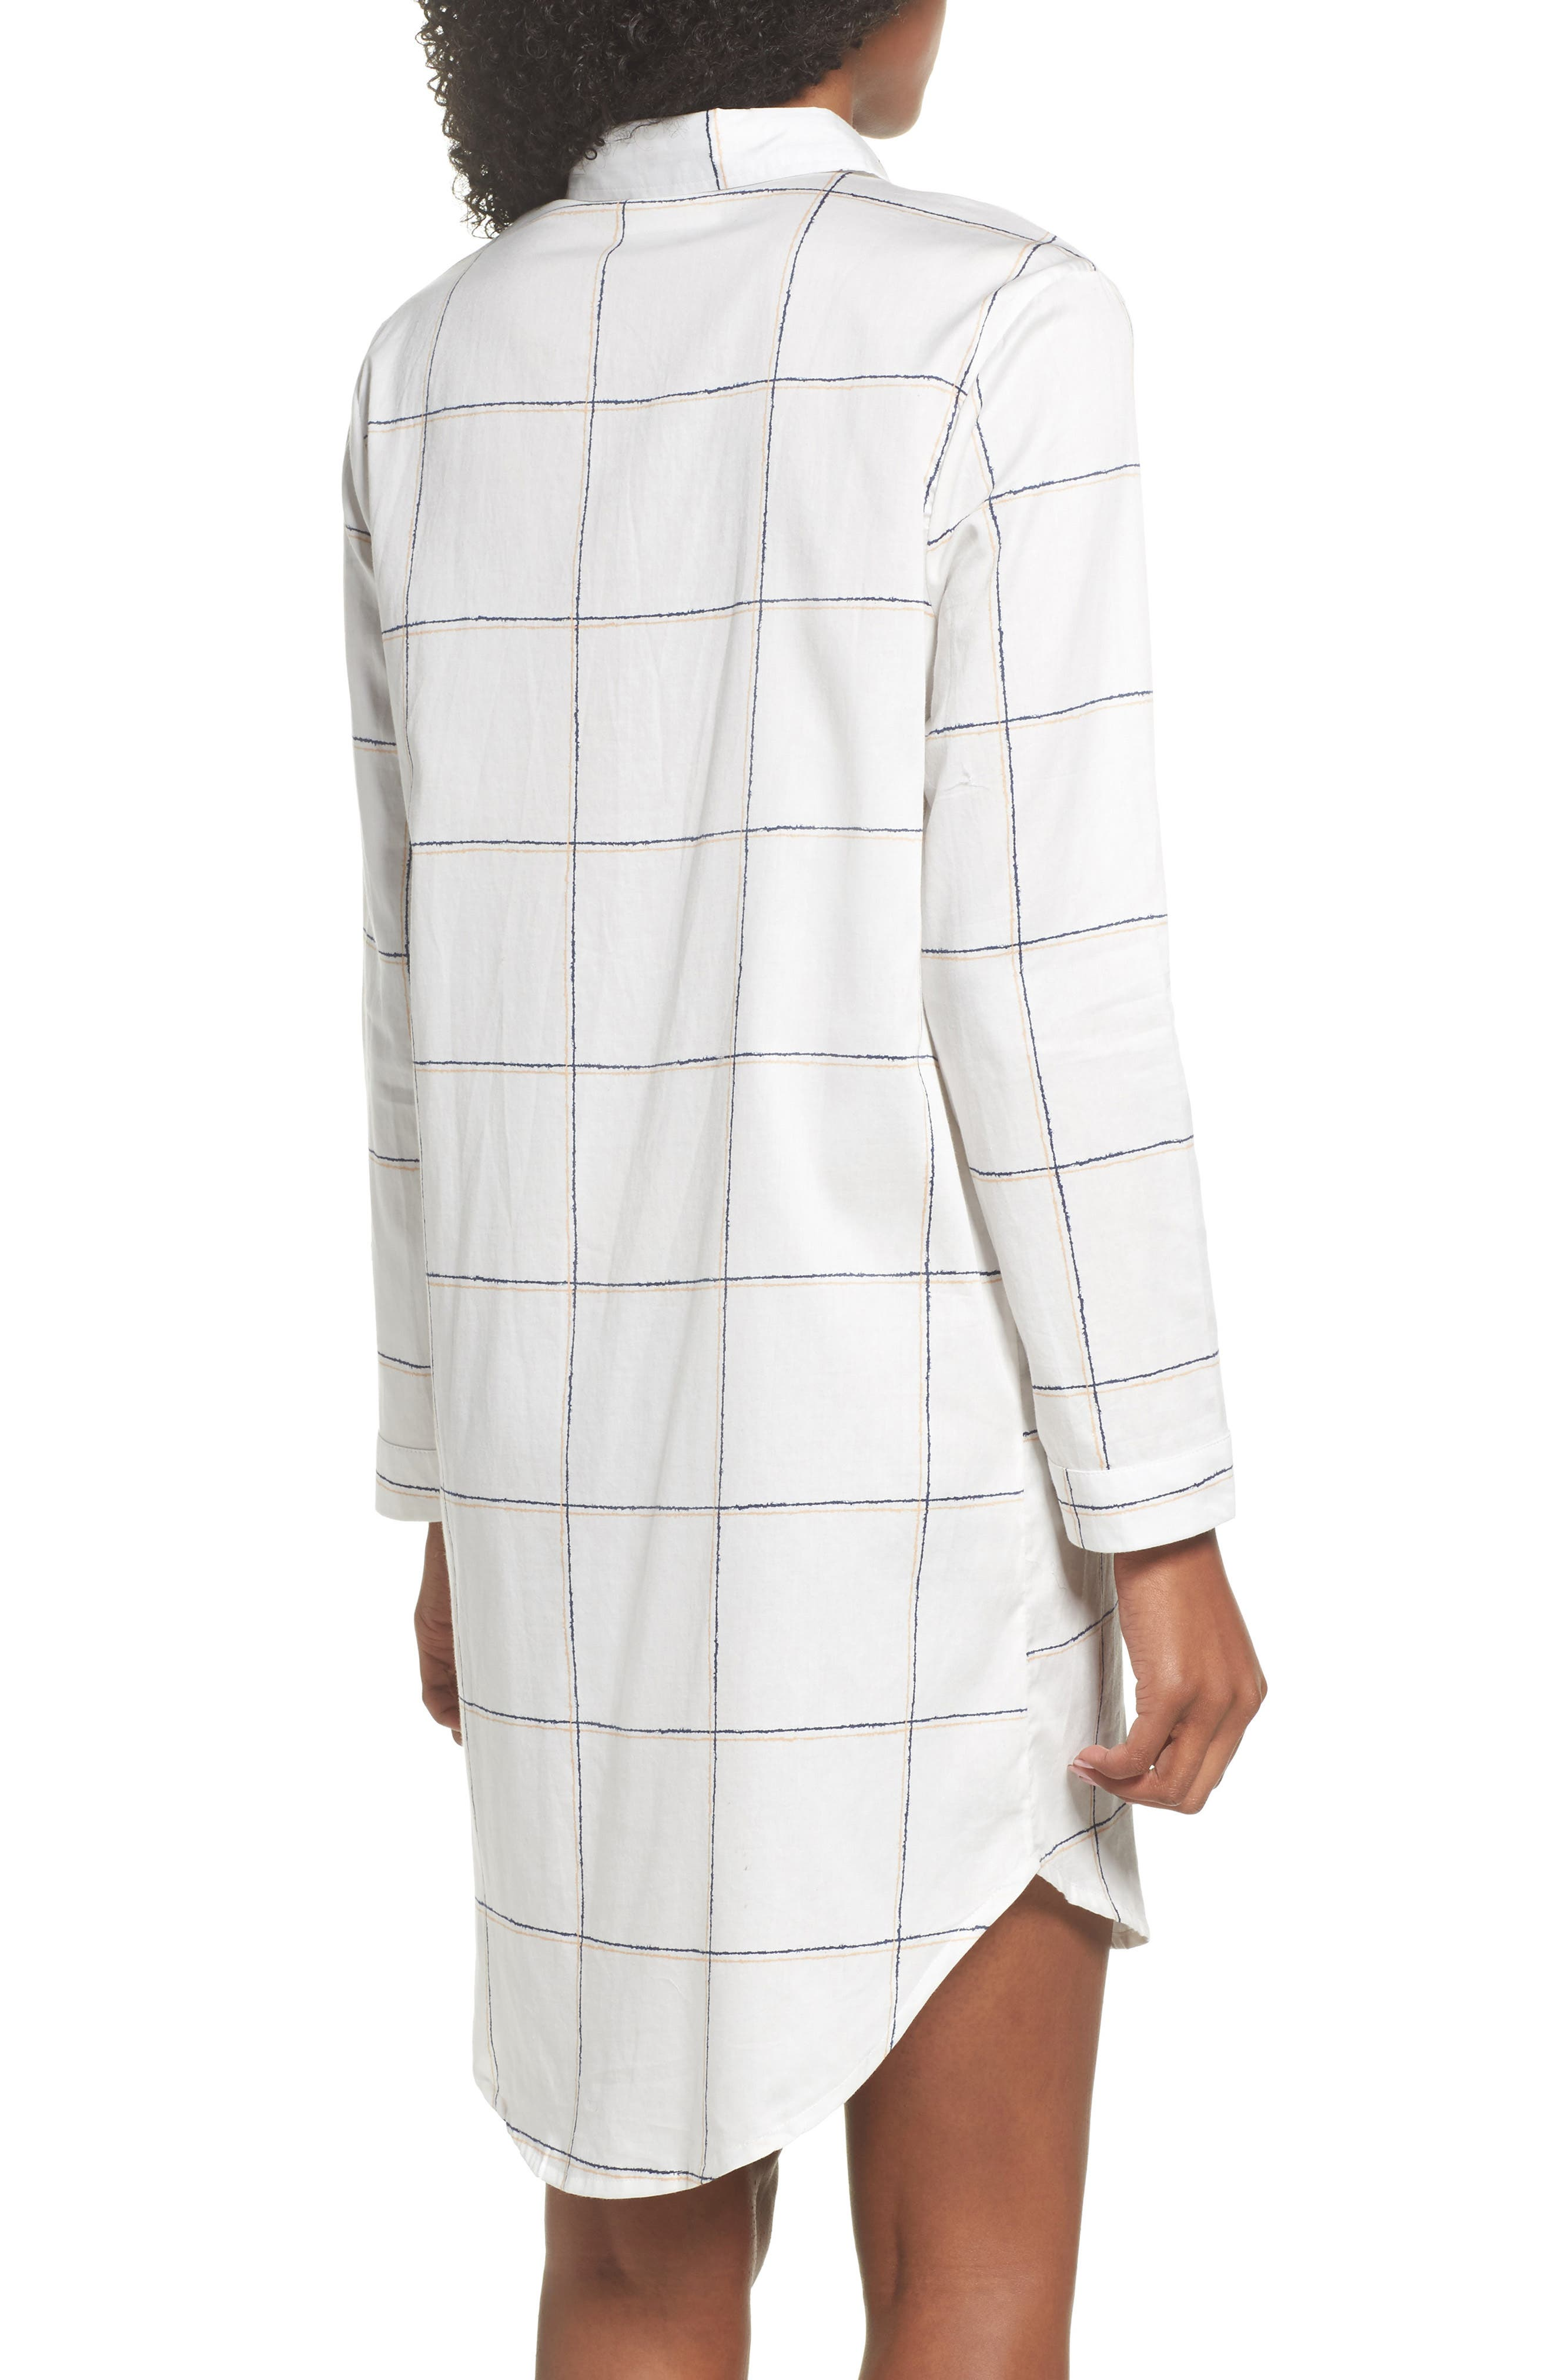 Evey Nightshirt,                             Alternate thumbnail 2, color,                             Coffee Check White